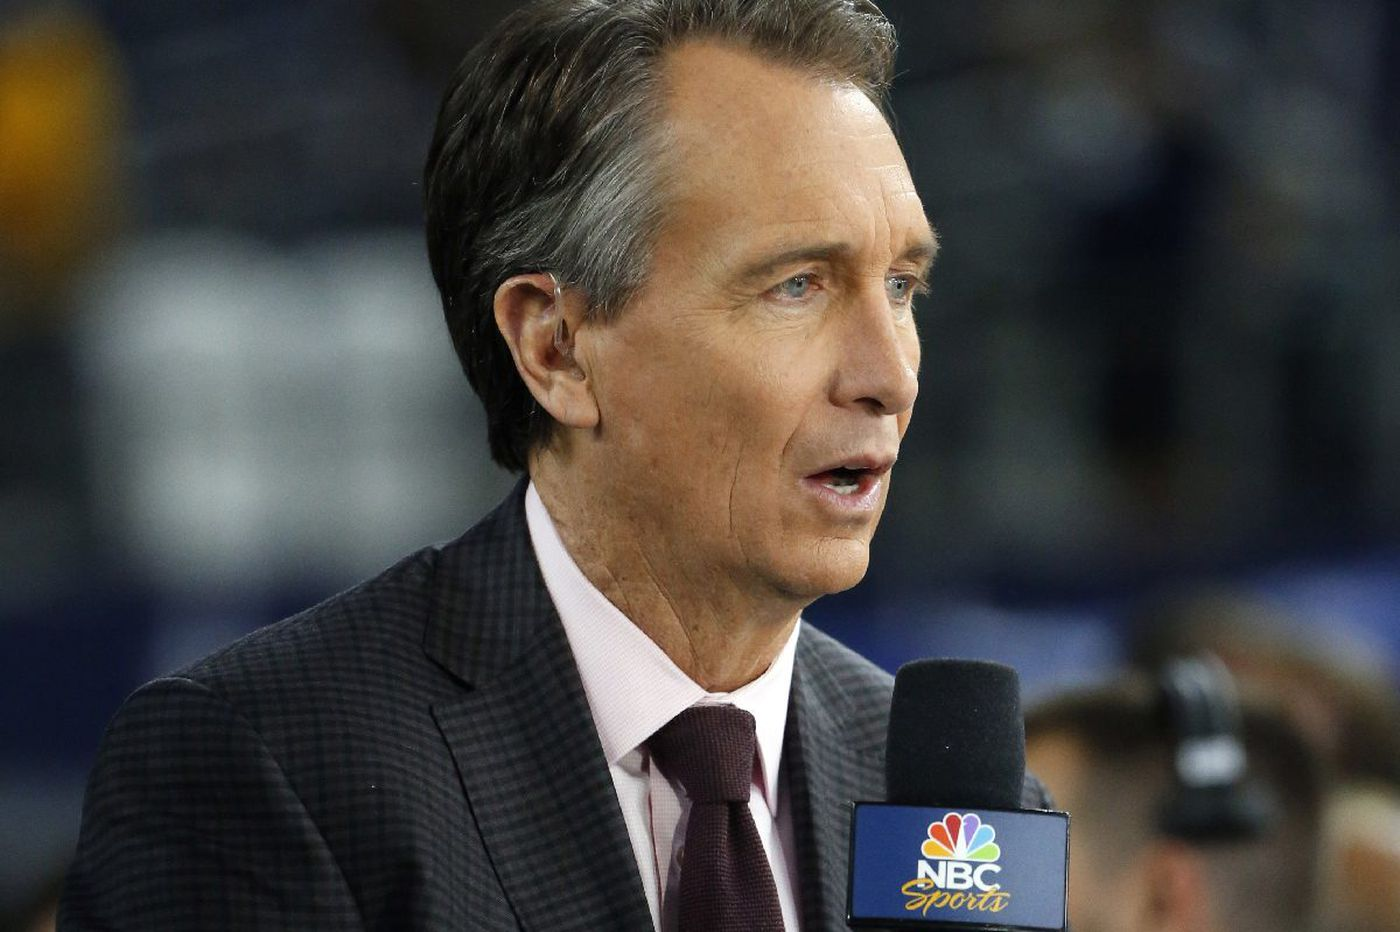 NBC's Cris Collinsworth couldn't accept the Eagles scored a touchdown during the Super Bowl